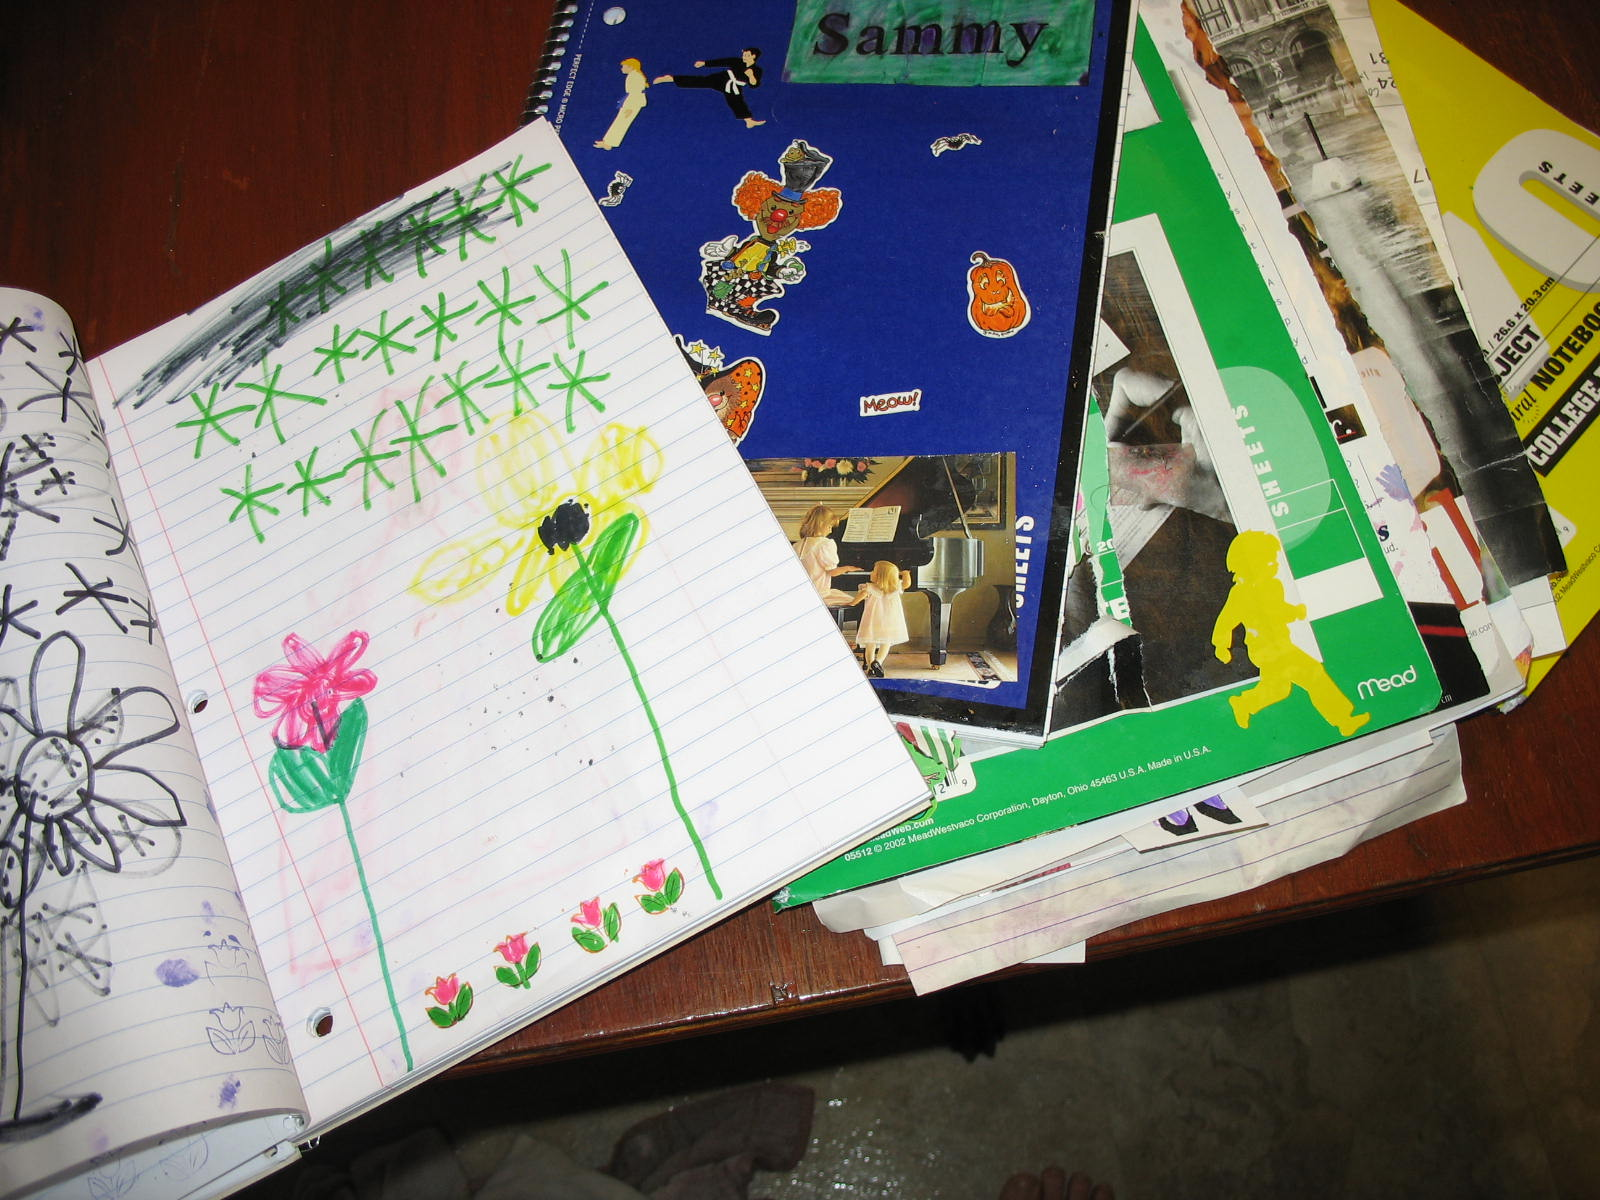 The notebooks - creativity at its best!